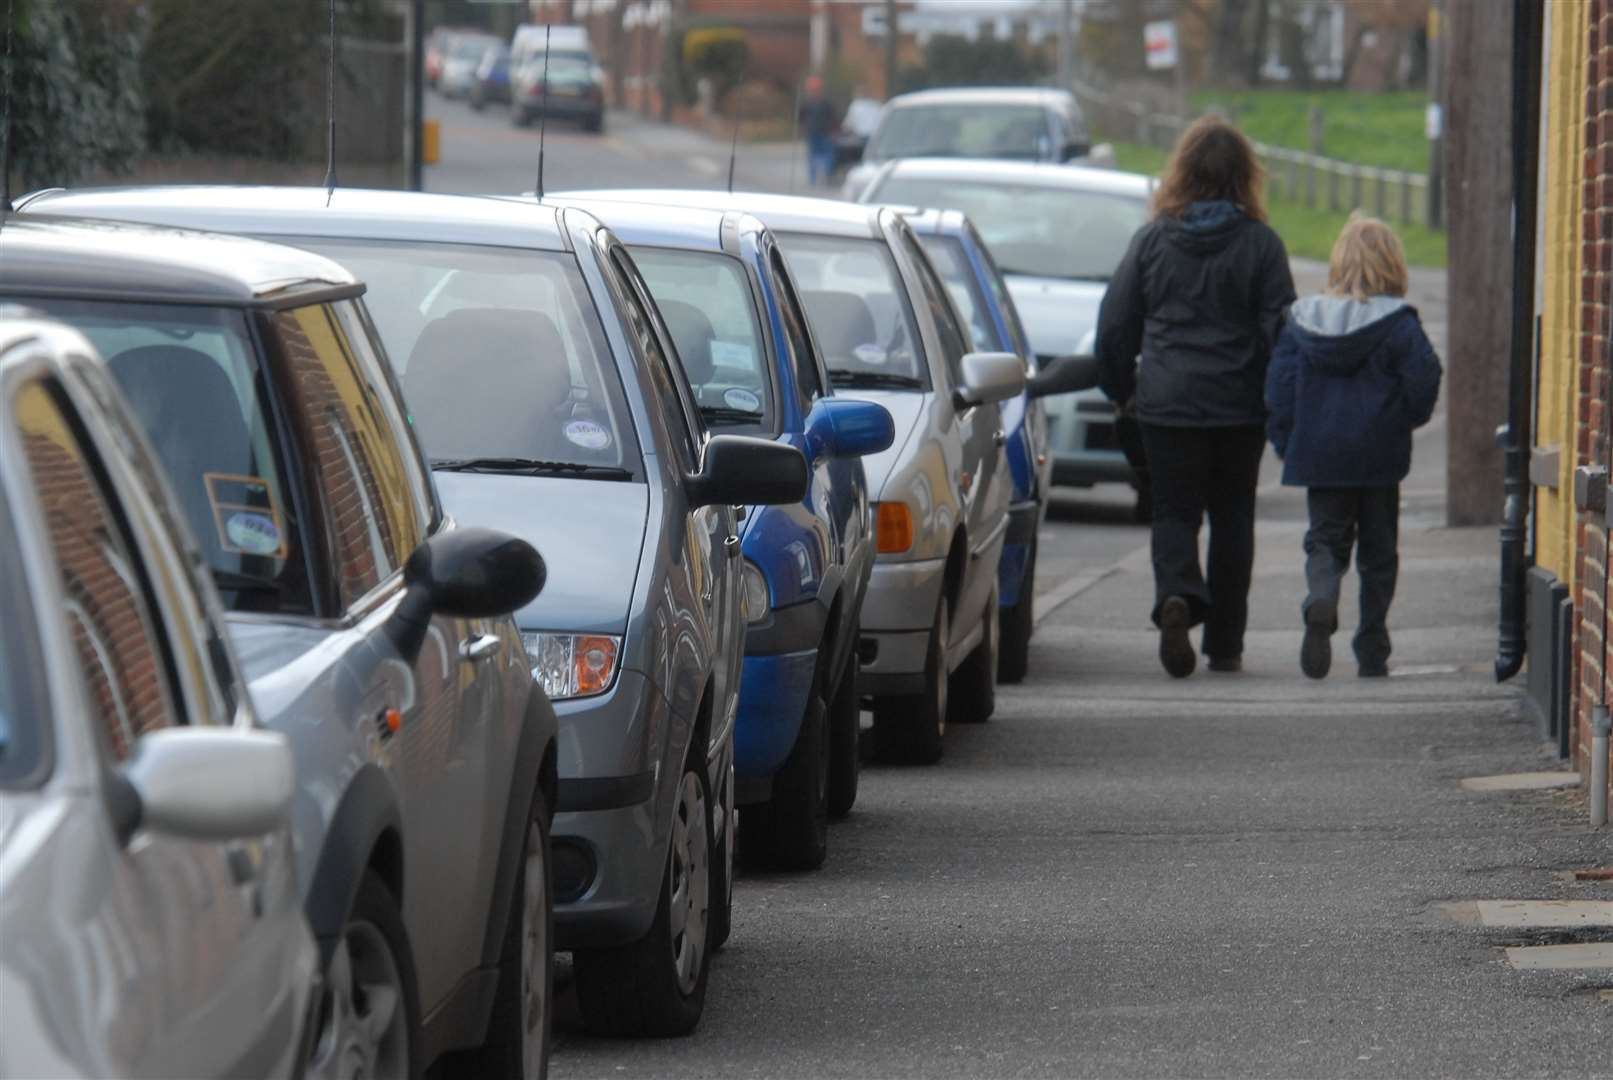 Research suggests cars are parked an average of 23 hours a day